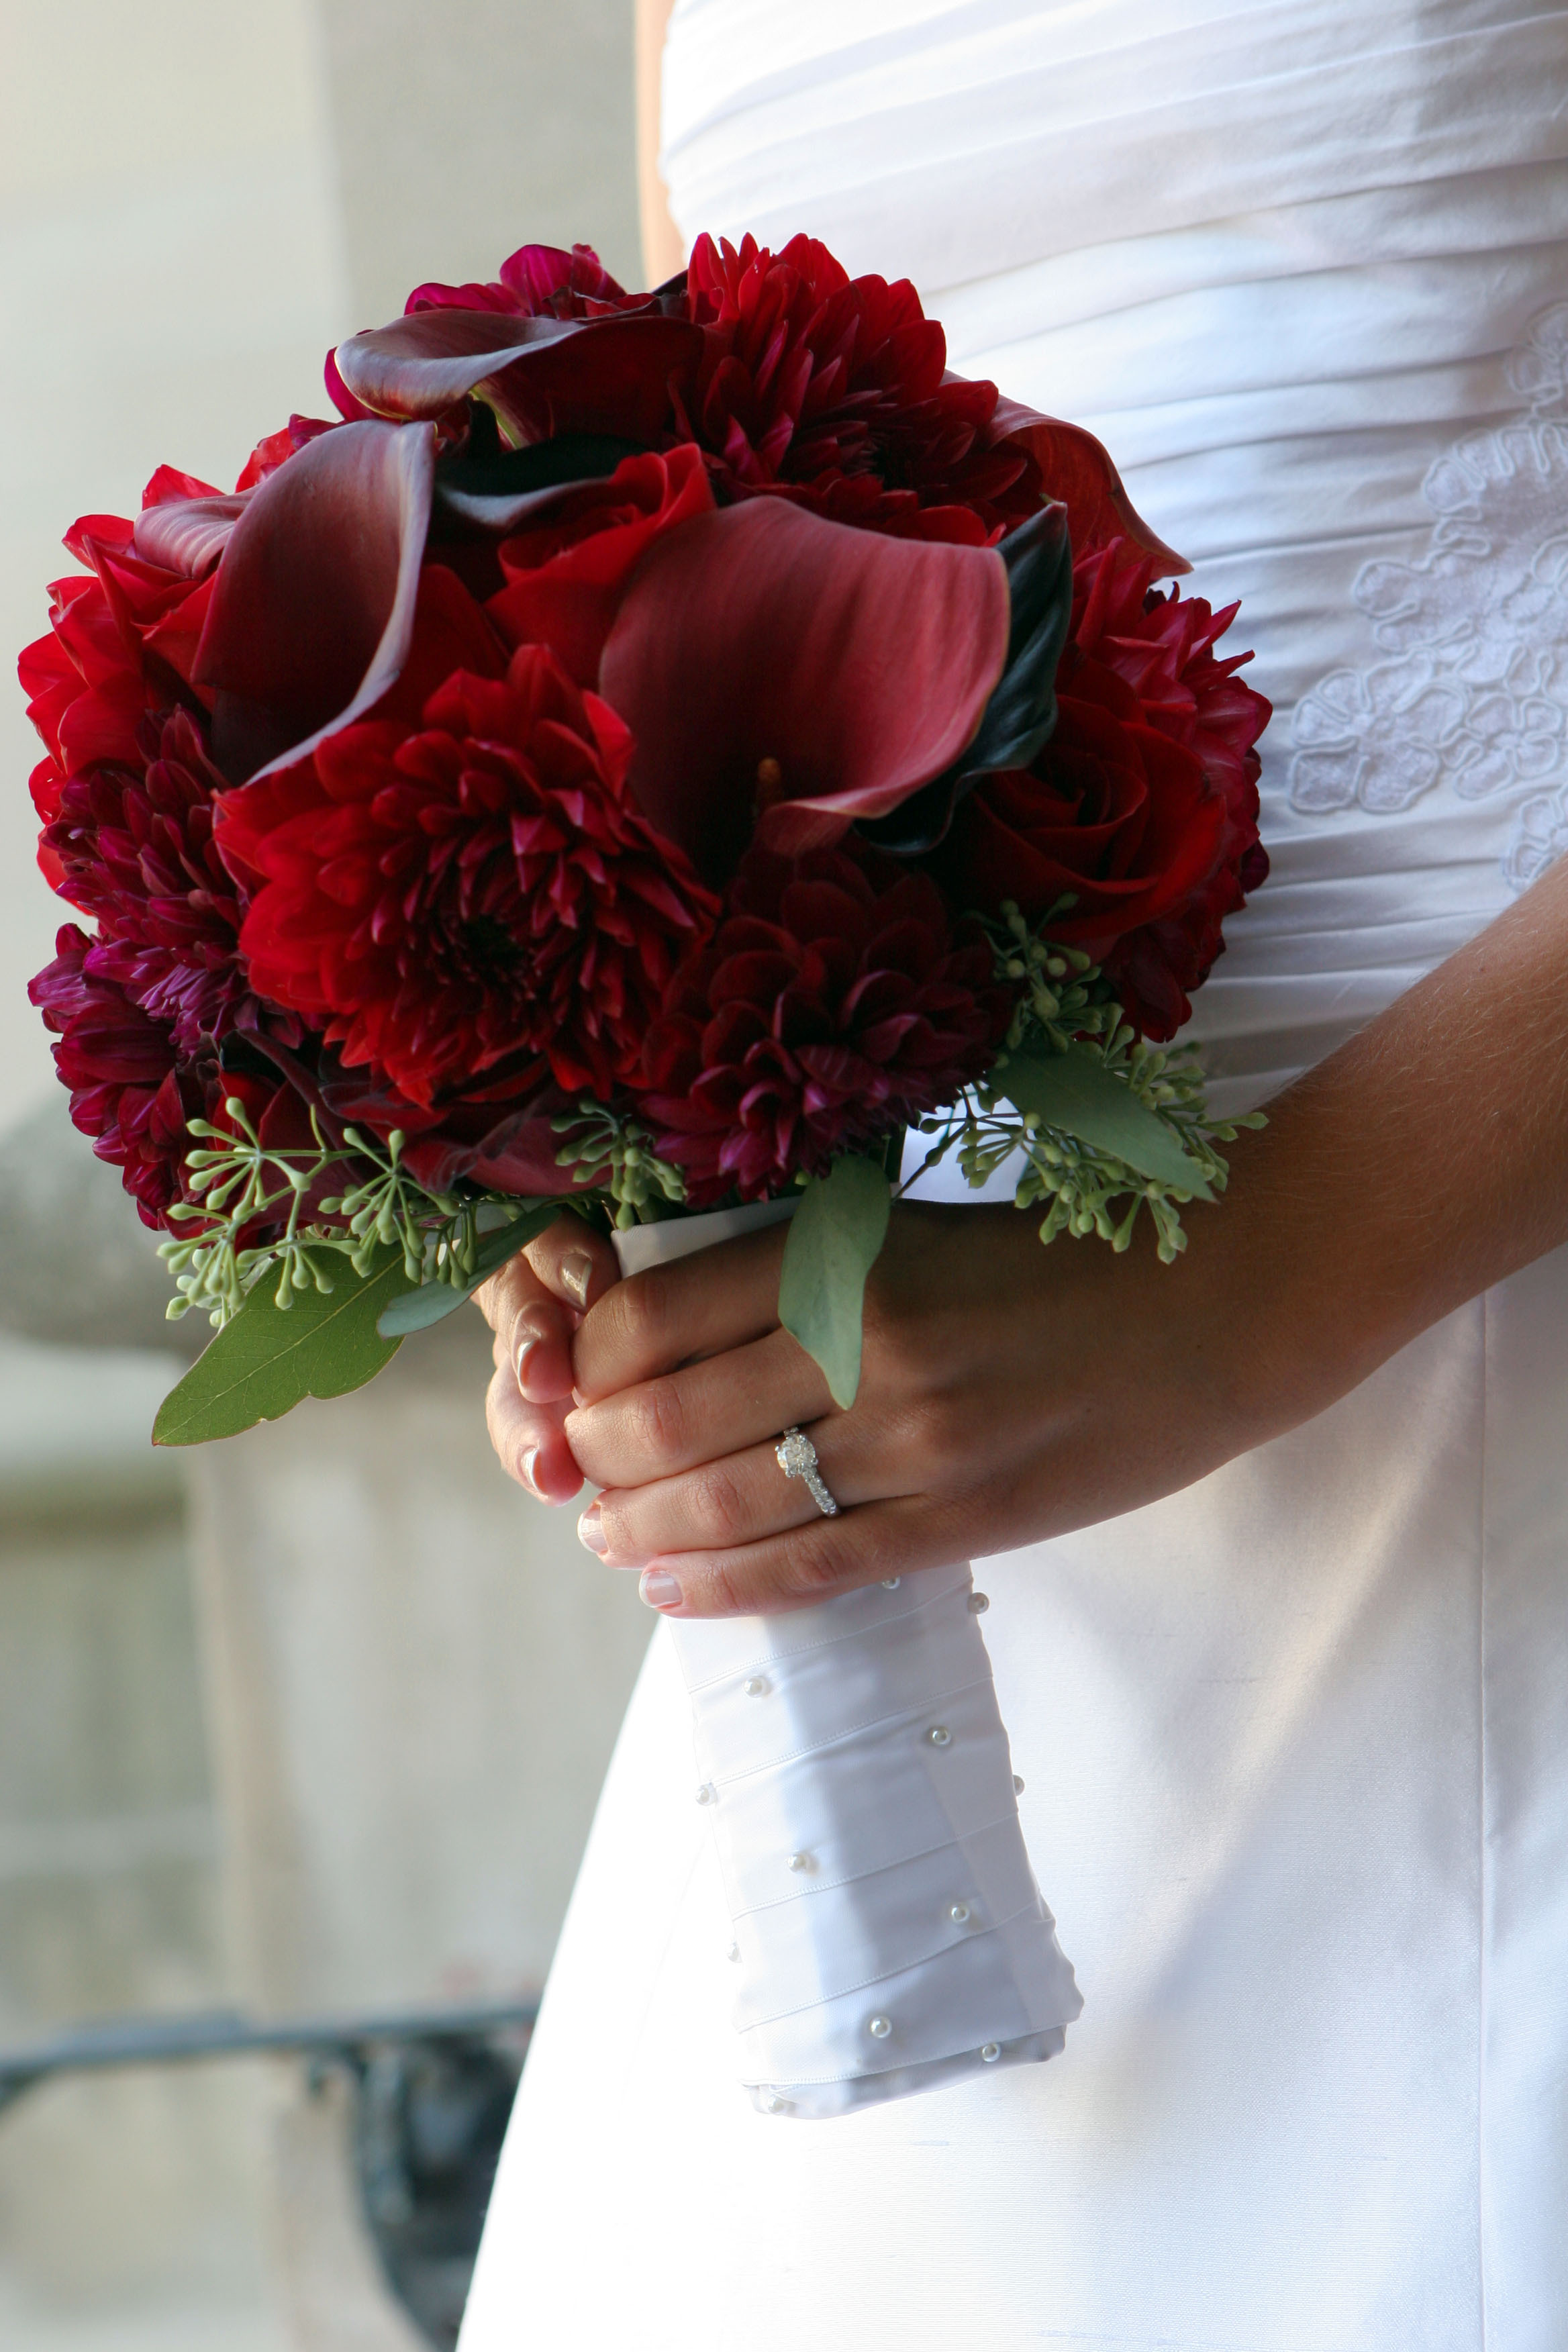 Bouquet By Just Bloomed Red Roses Dahlias And Calla Lilies JustBloomedcom Photo By Red Ribbon